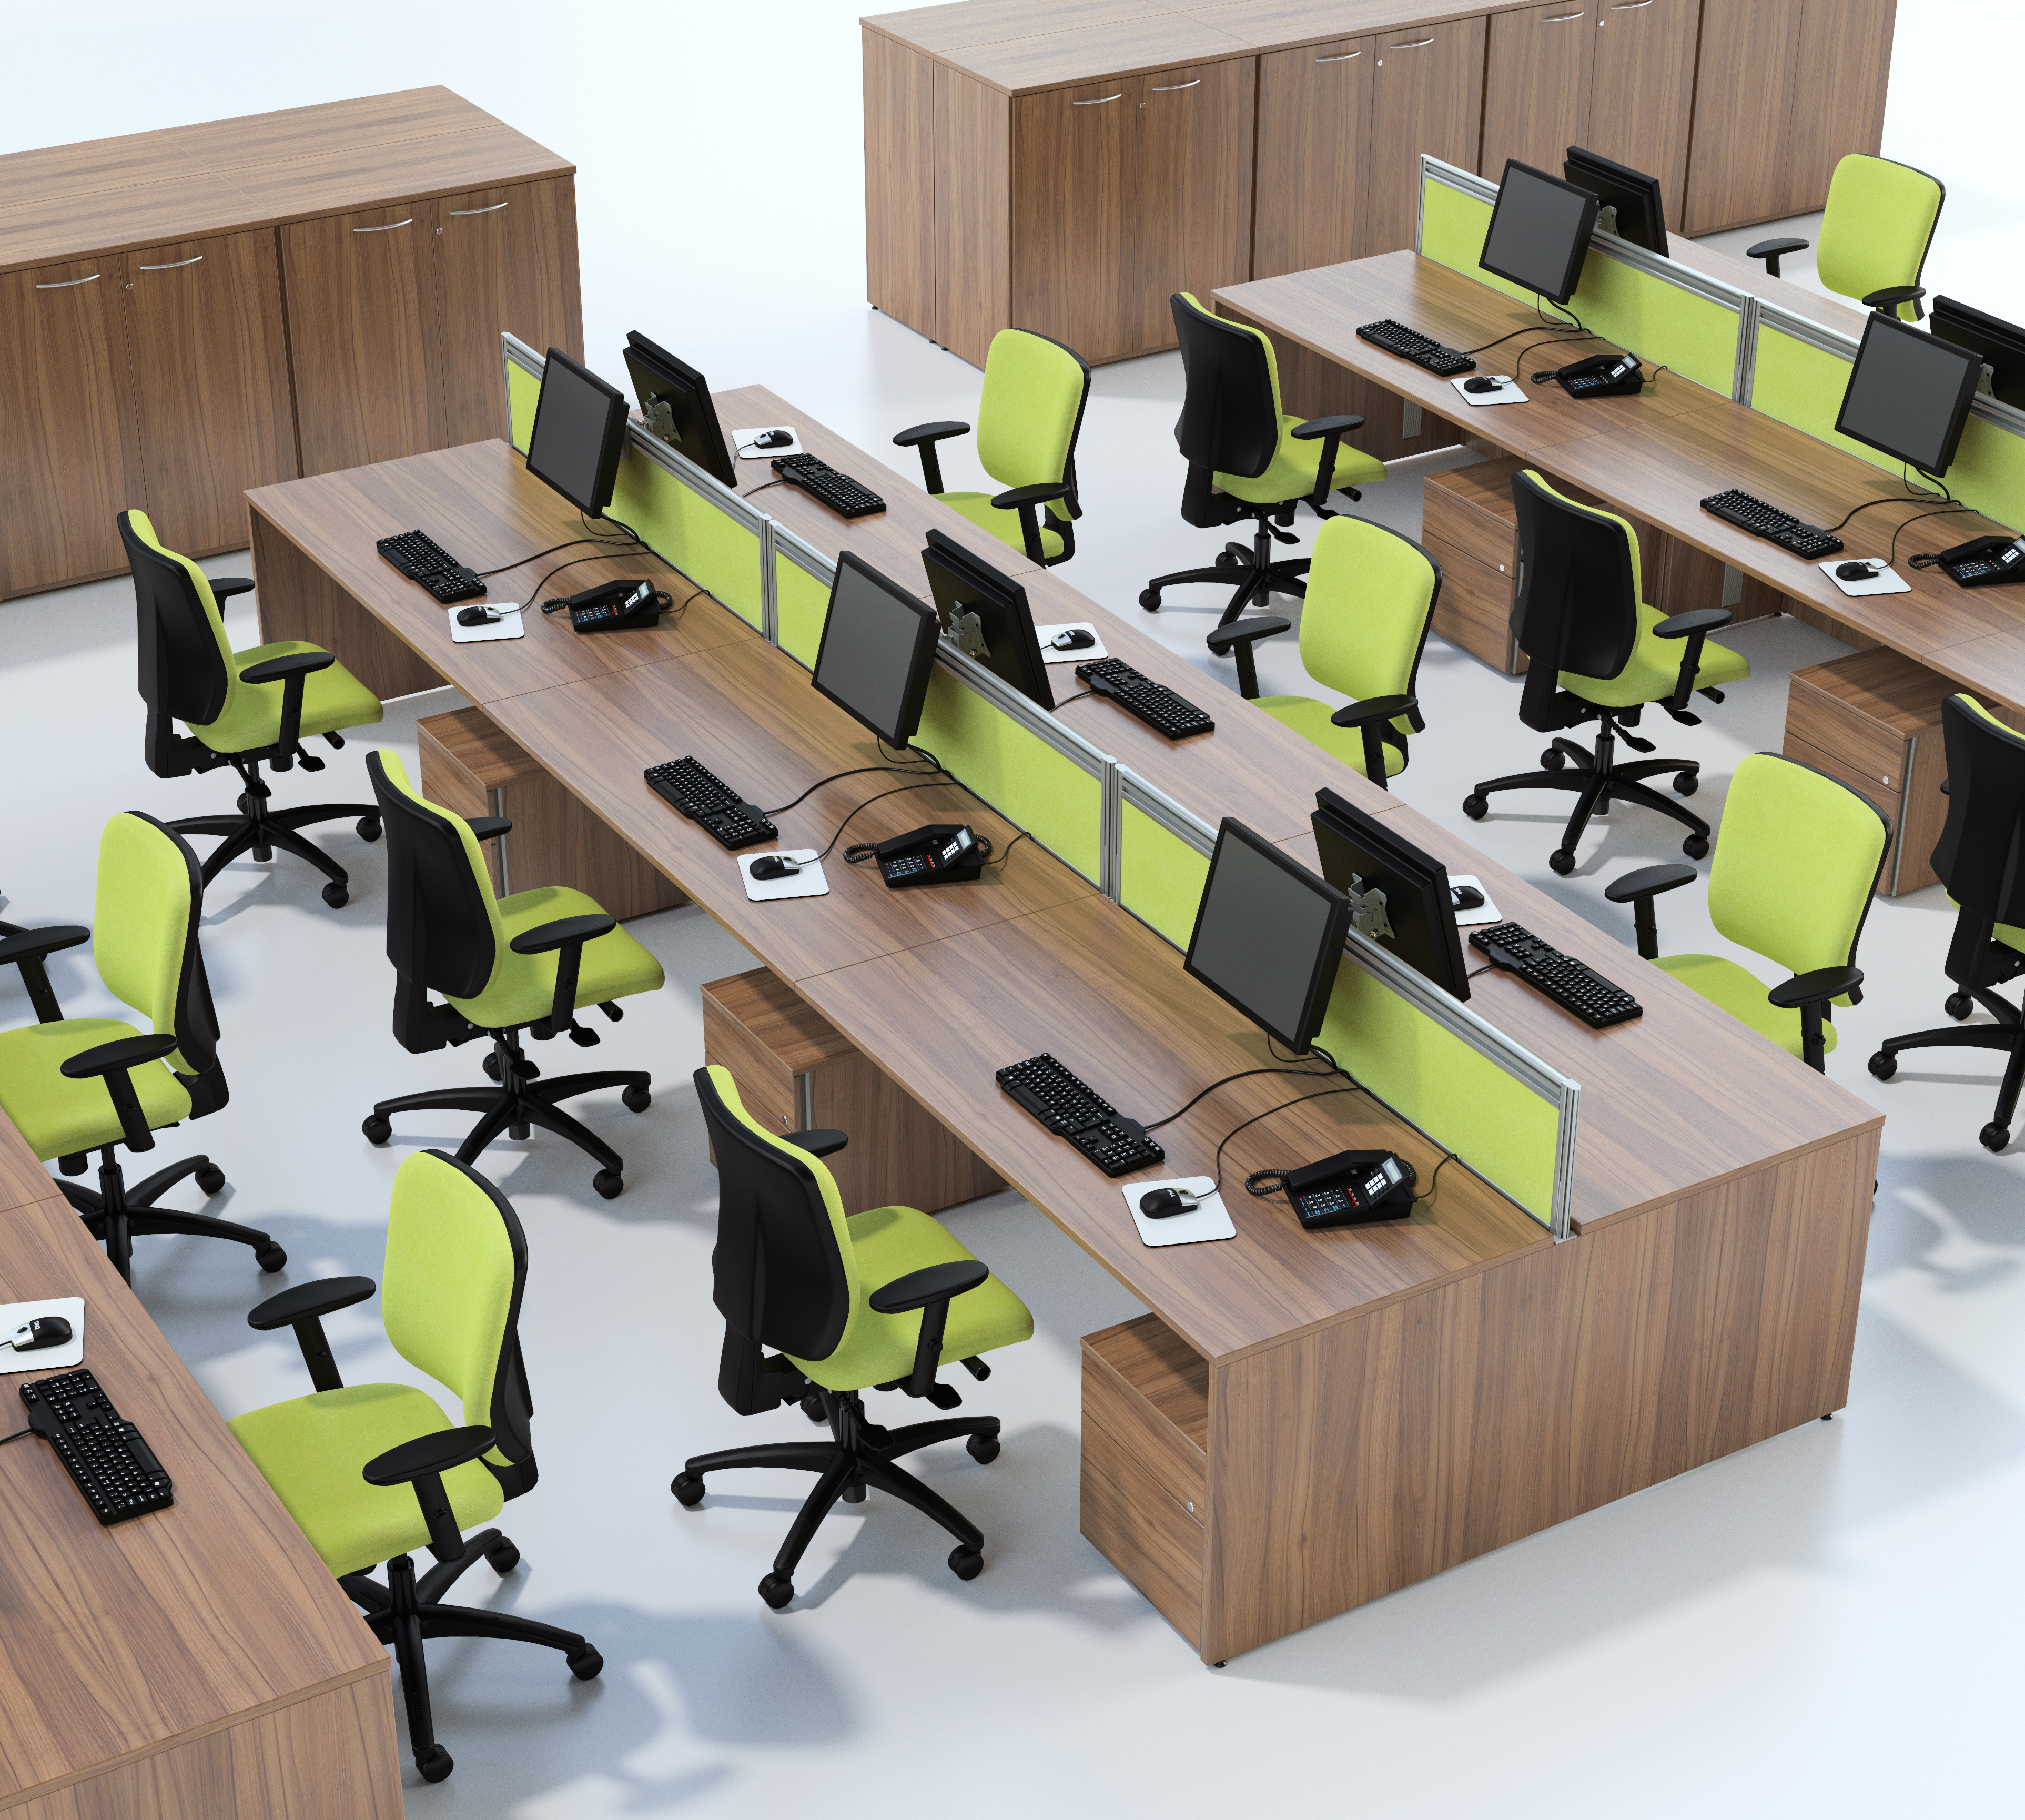 Centaur Rectangular Workstations